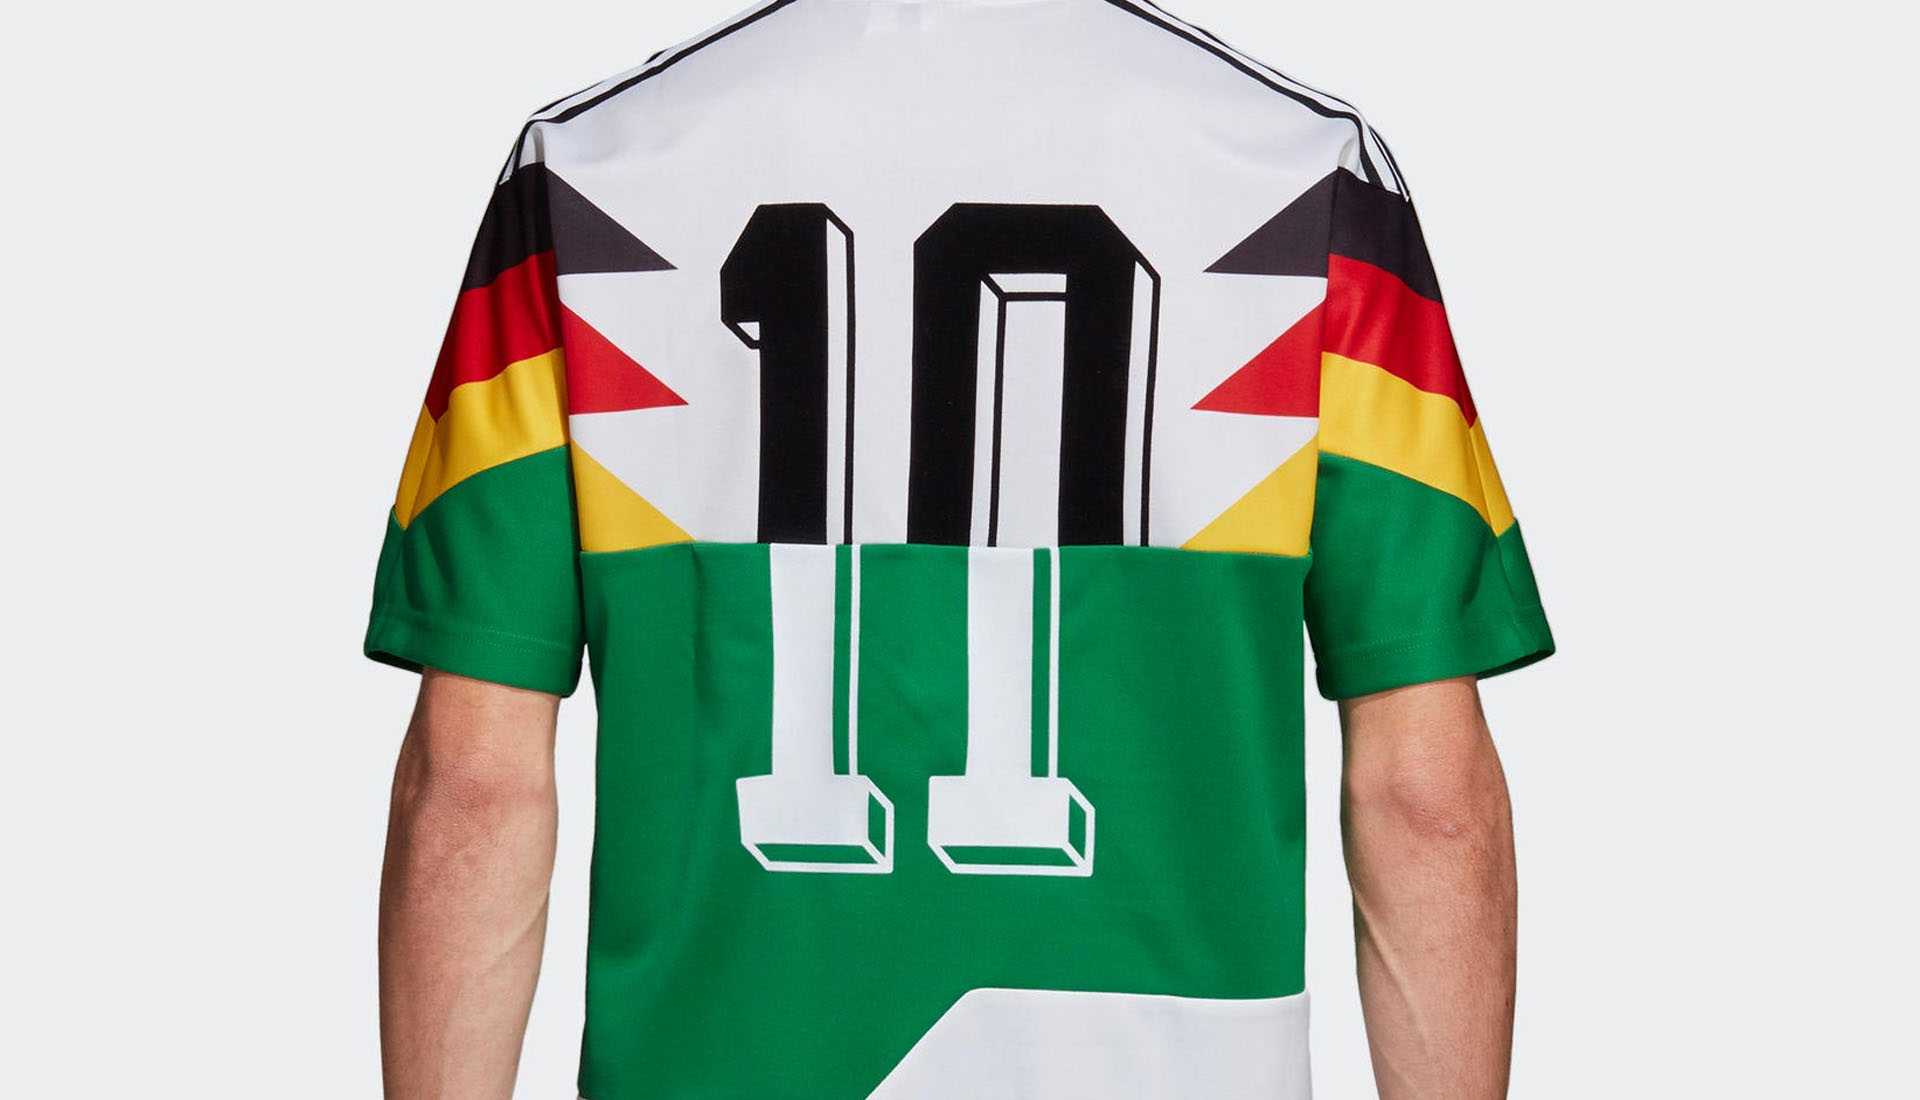 cheaper 8ef40 beb94 adidas Launch World Cup 2018 Mash Up Jerseys - SoccerBible